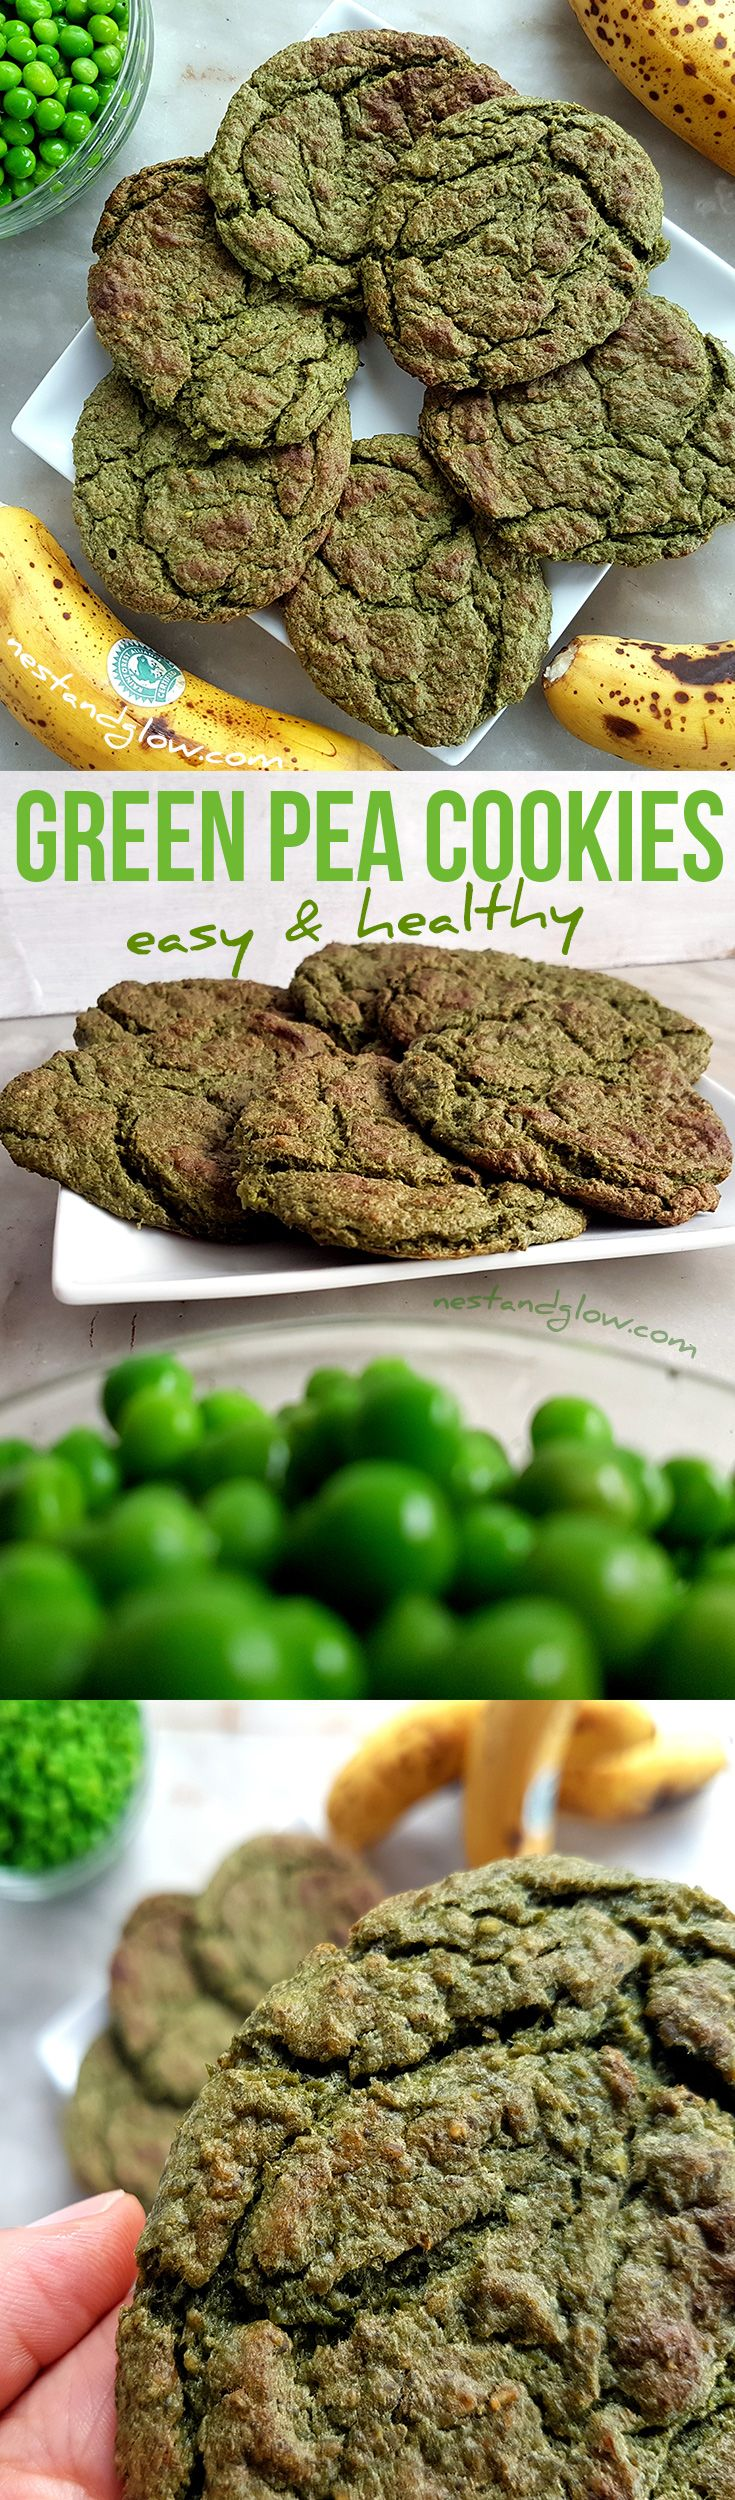 Green Pea Sweet and Salty Cookies Recipe - easy and quick healthy cookies  via @nestandglow